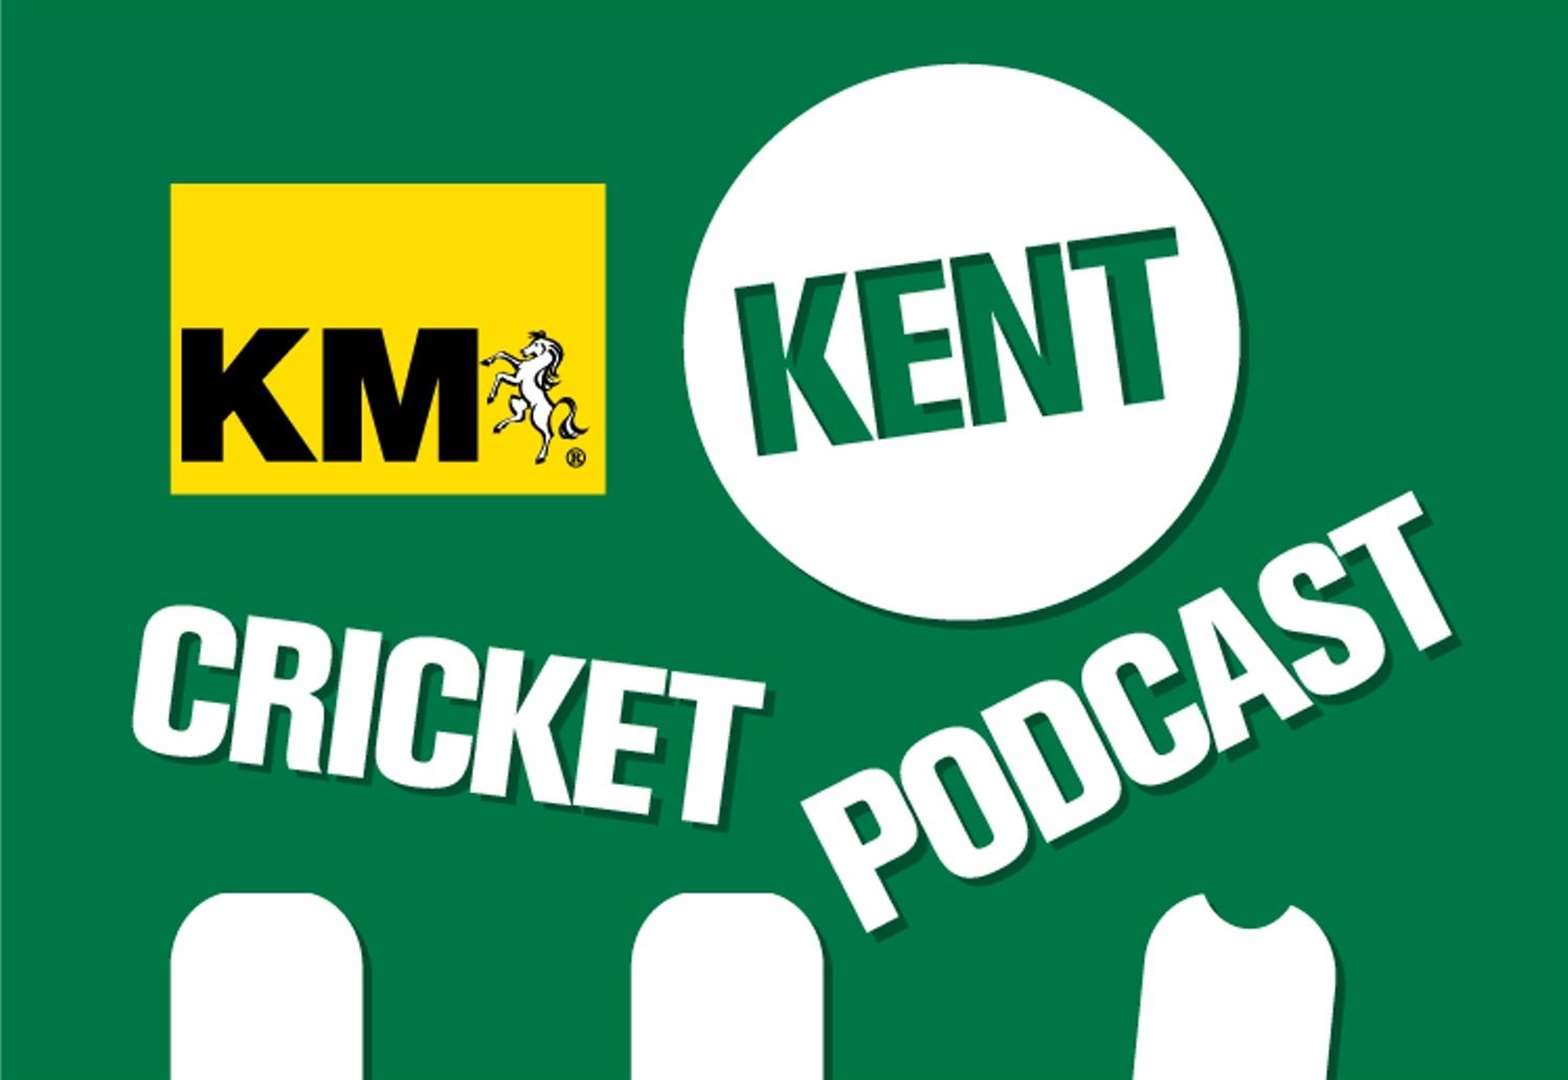 Kent Cricket Podcast episode 9